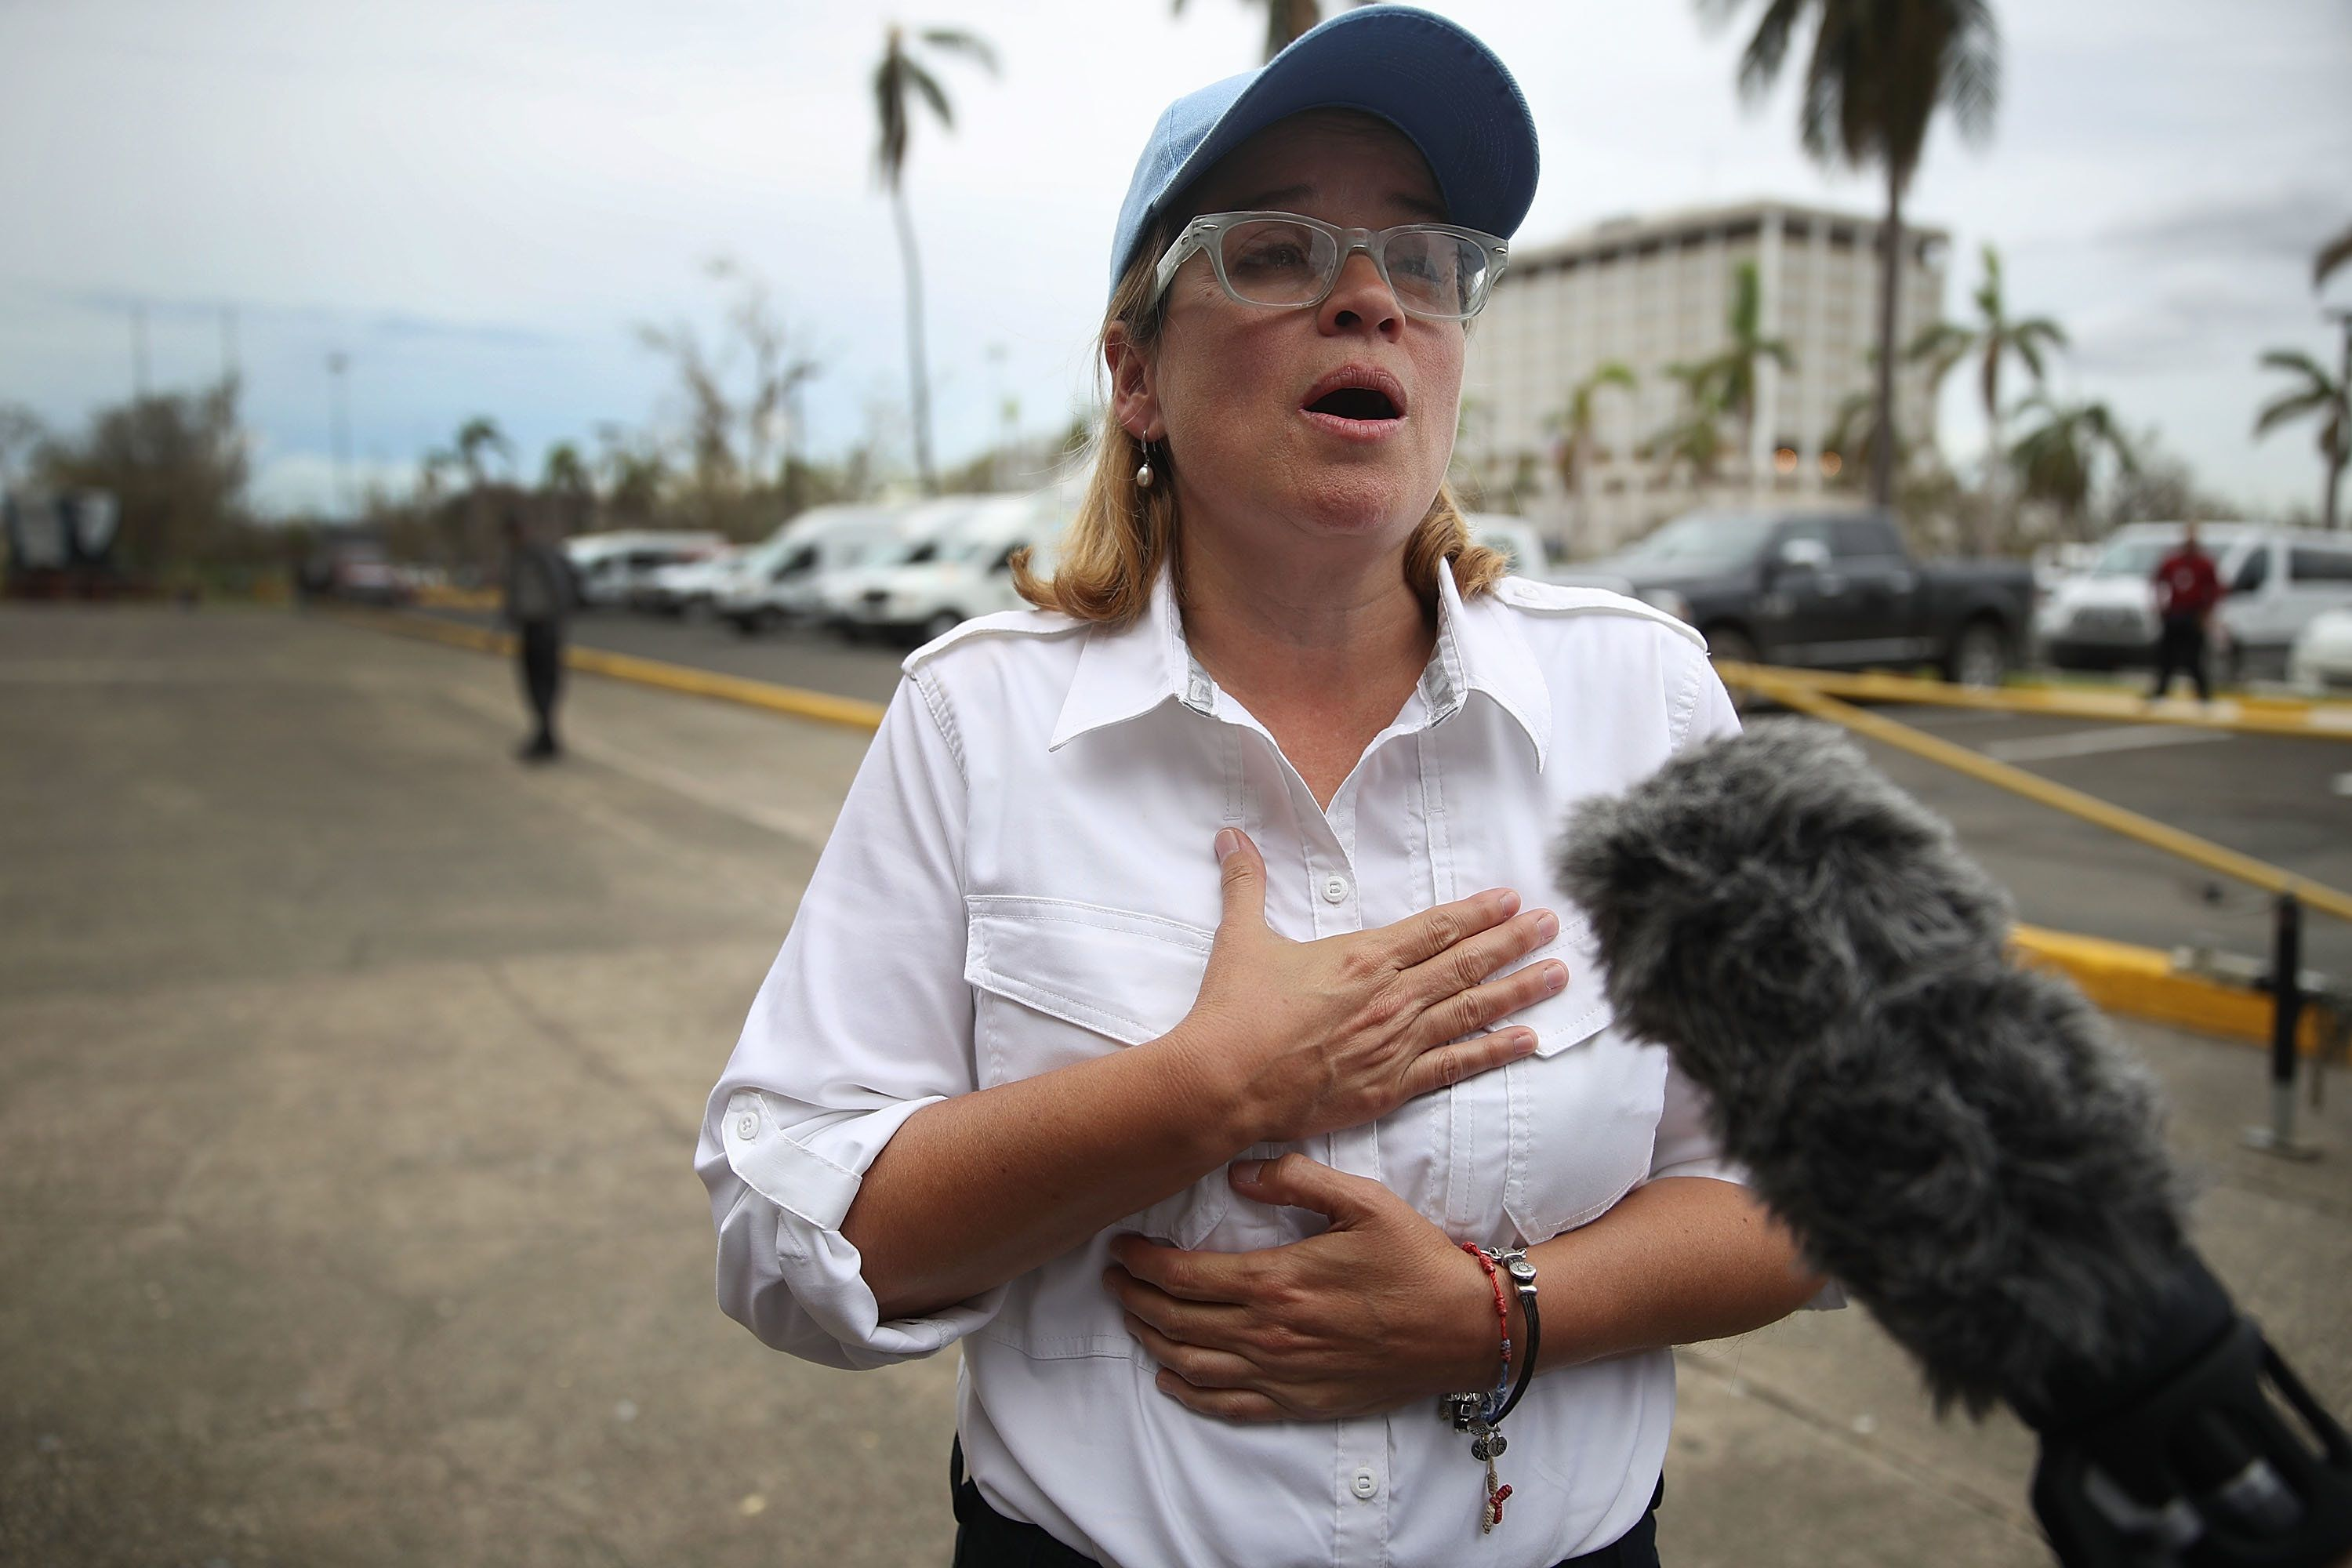 San Juan Mayor Carmen Yulín Cruz has been an outspoken critic of the federal government's response to the hurrica